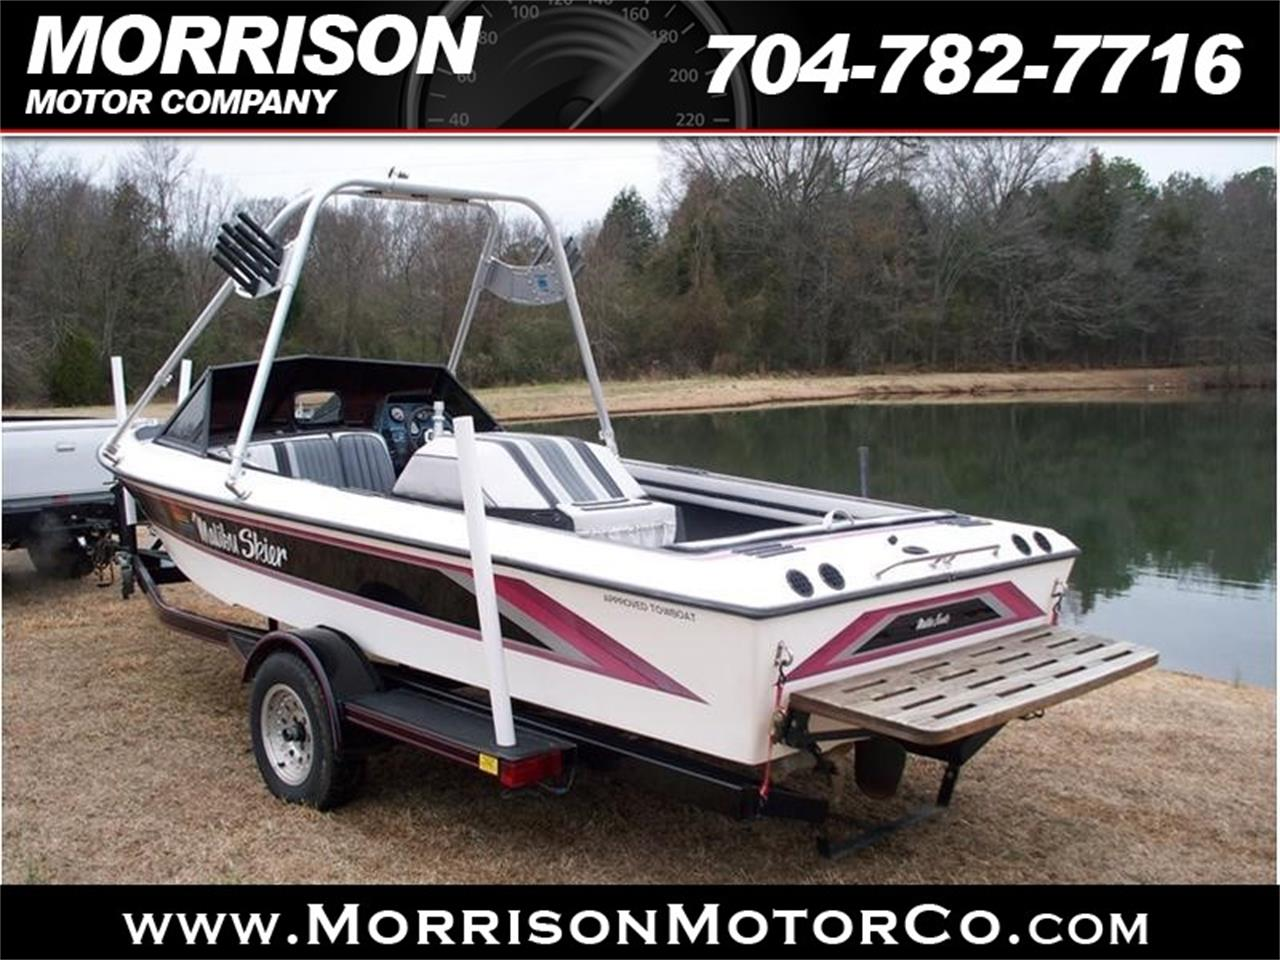 1991 Miscellaneous Boat for sale in Concord, NC – photo 10